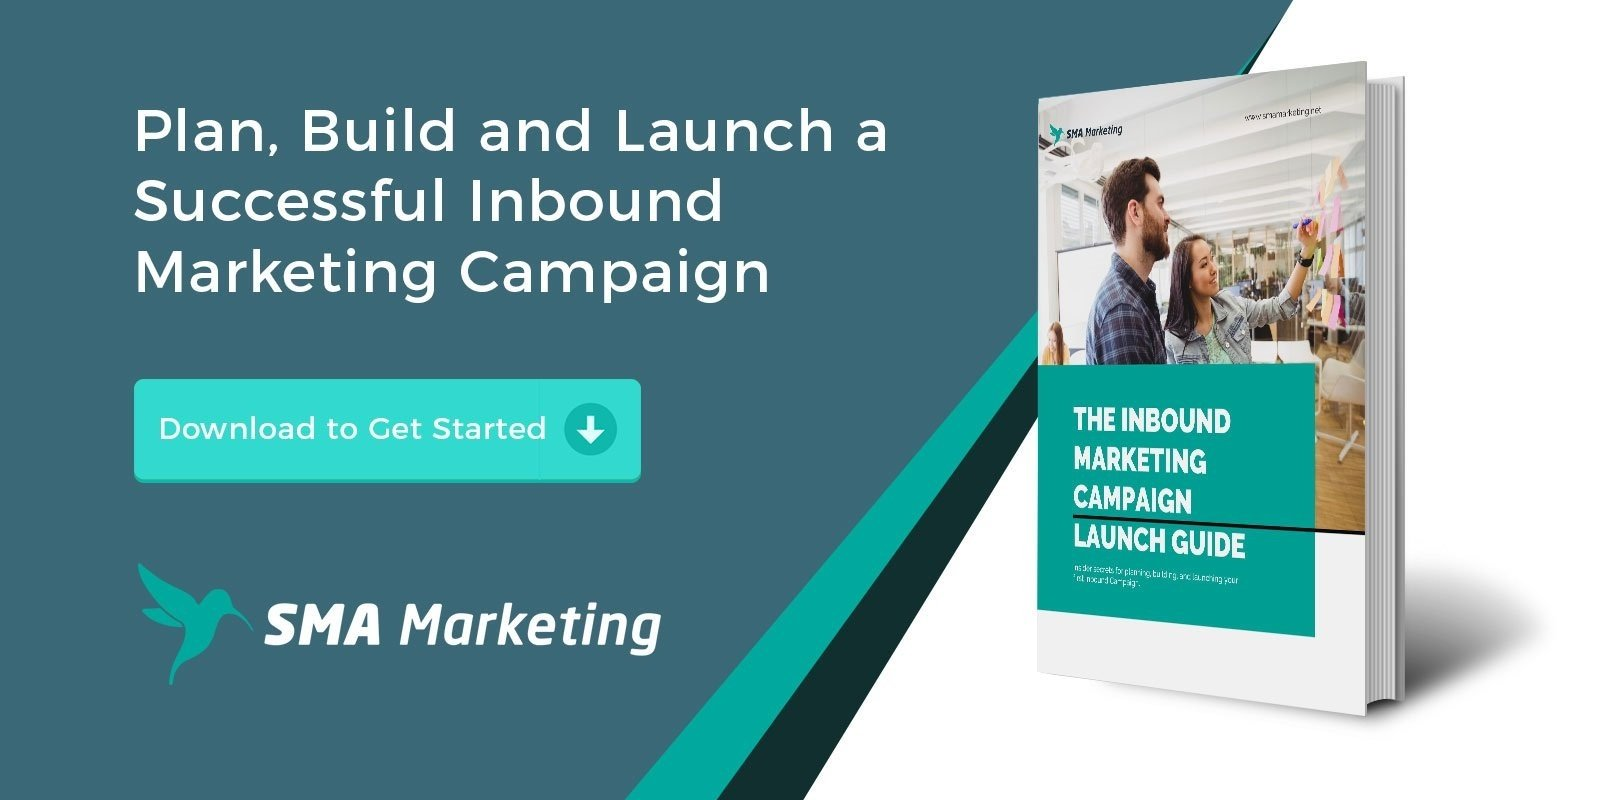 Inbound Marketing Campaign Launch Guide